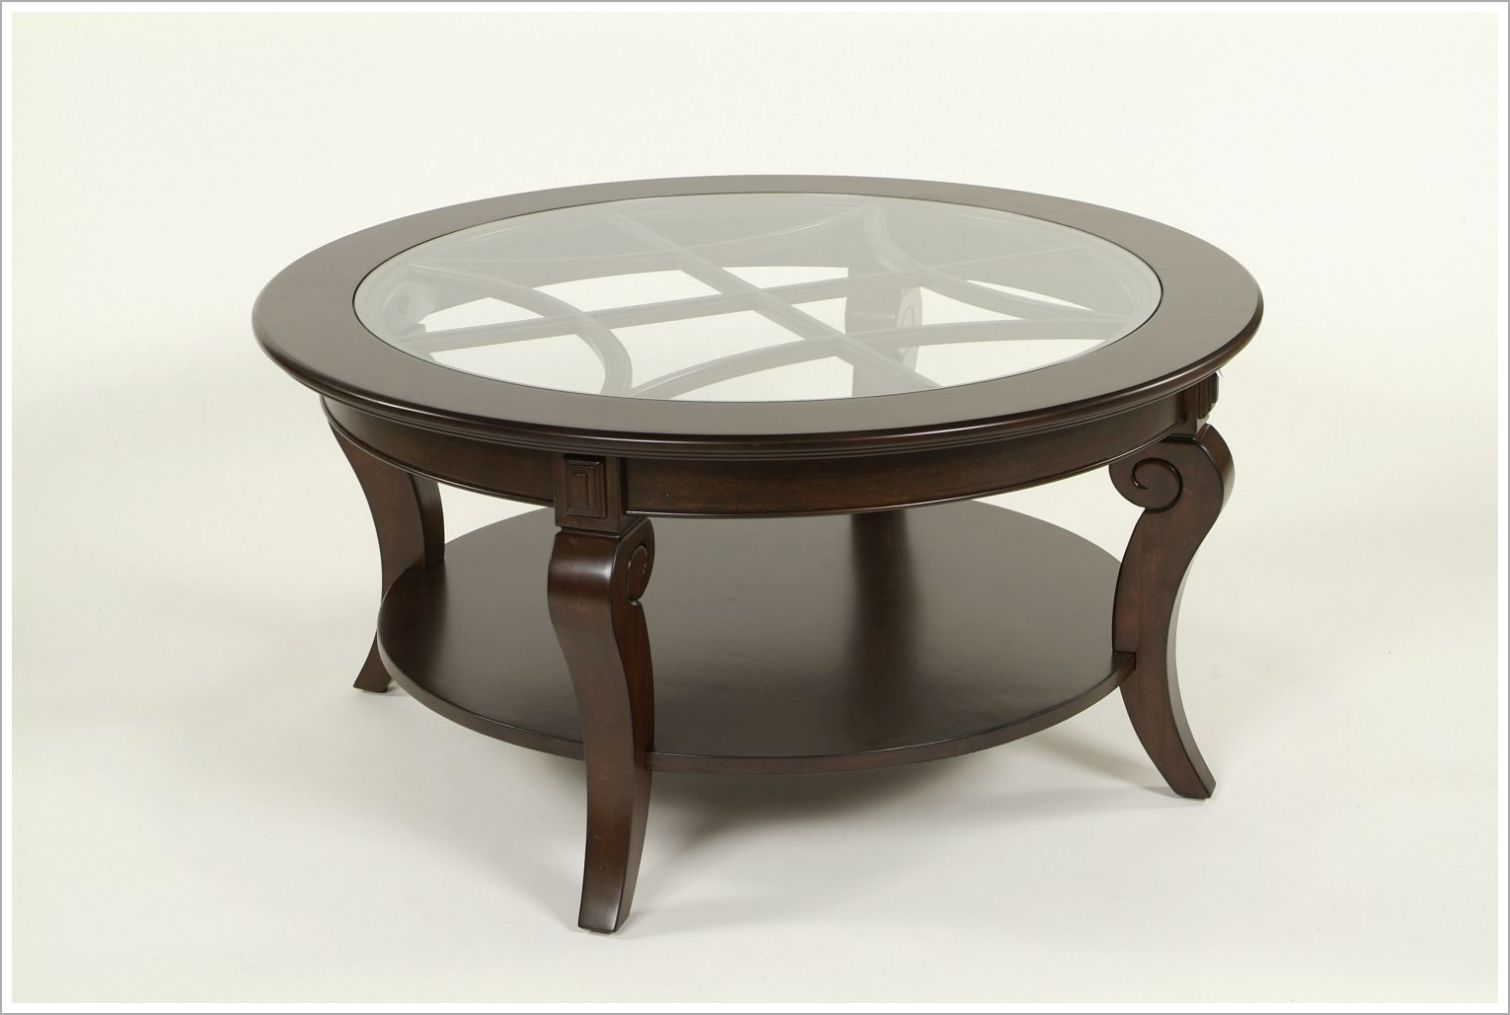 Custom Hotel Cocktail Table with Lattice Pattern and Inset Glass Top